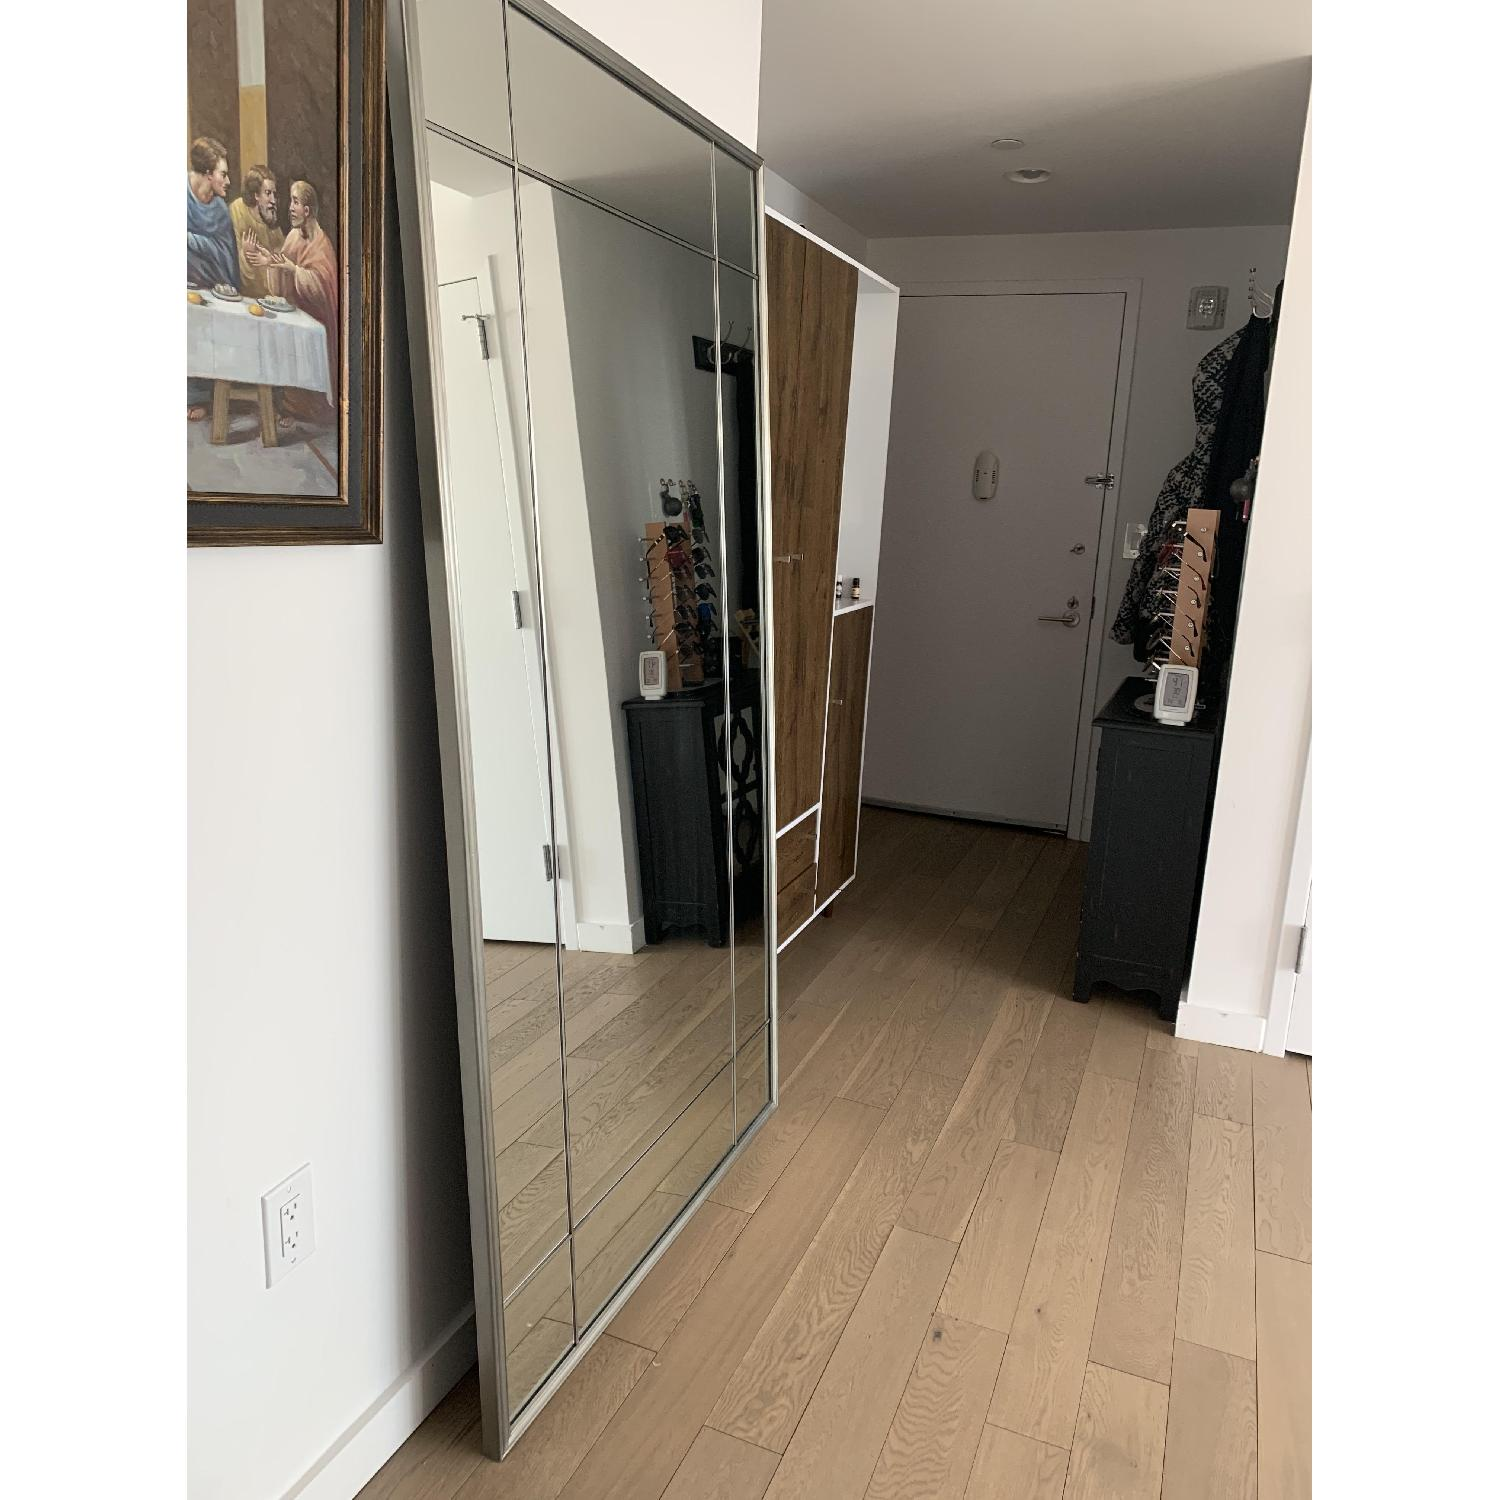 Restoration Hardware Full Length Mirror-1